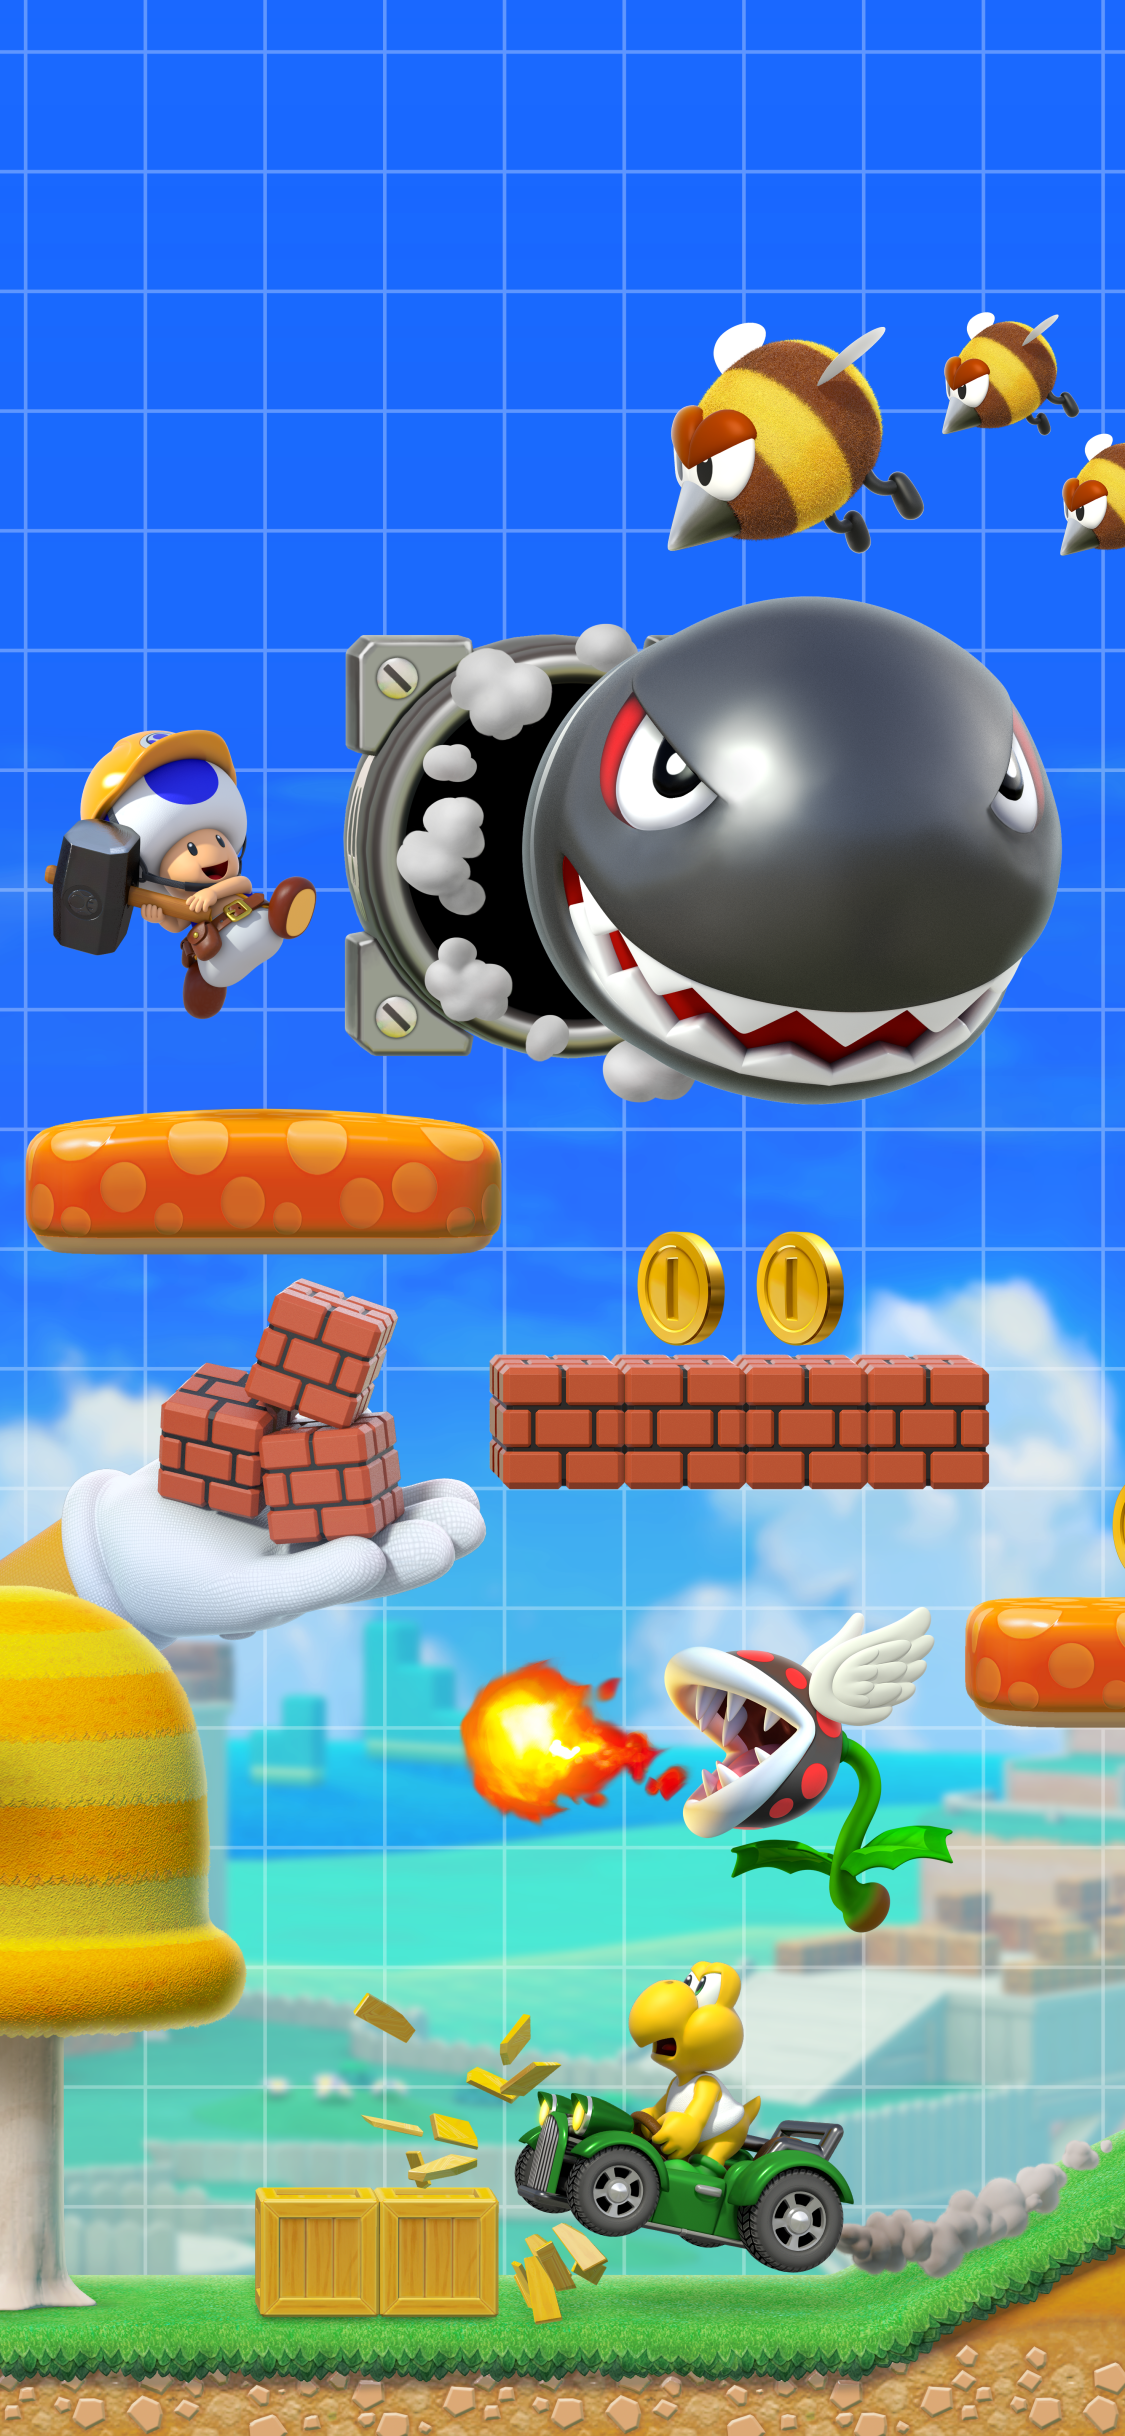 Video Game Super Mario Maker 2 1125x2436 Wallpaper Id 777799